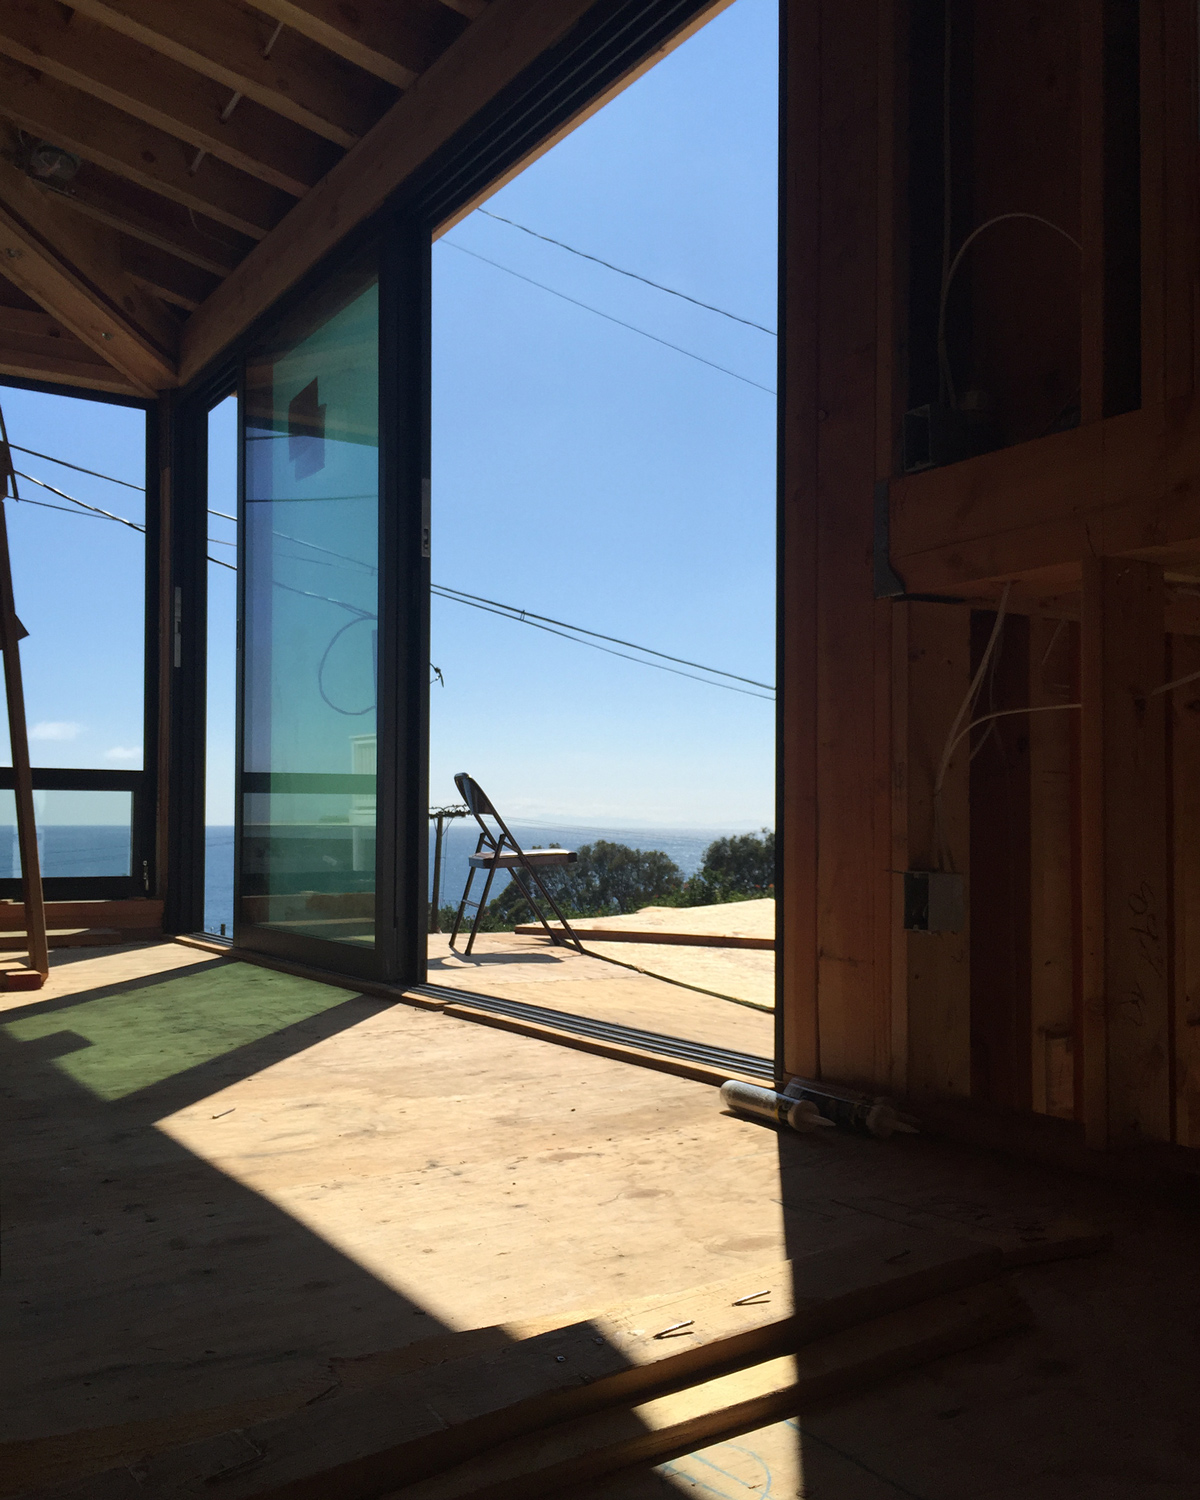 fleetwood multislide door system at deck